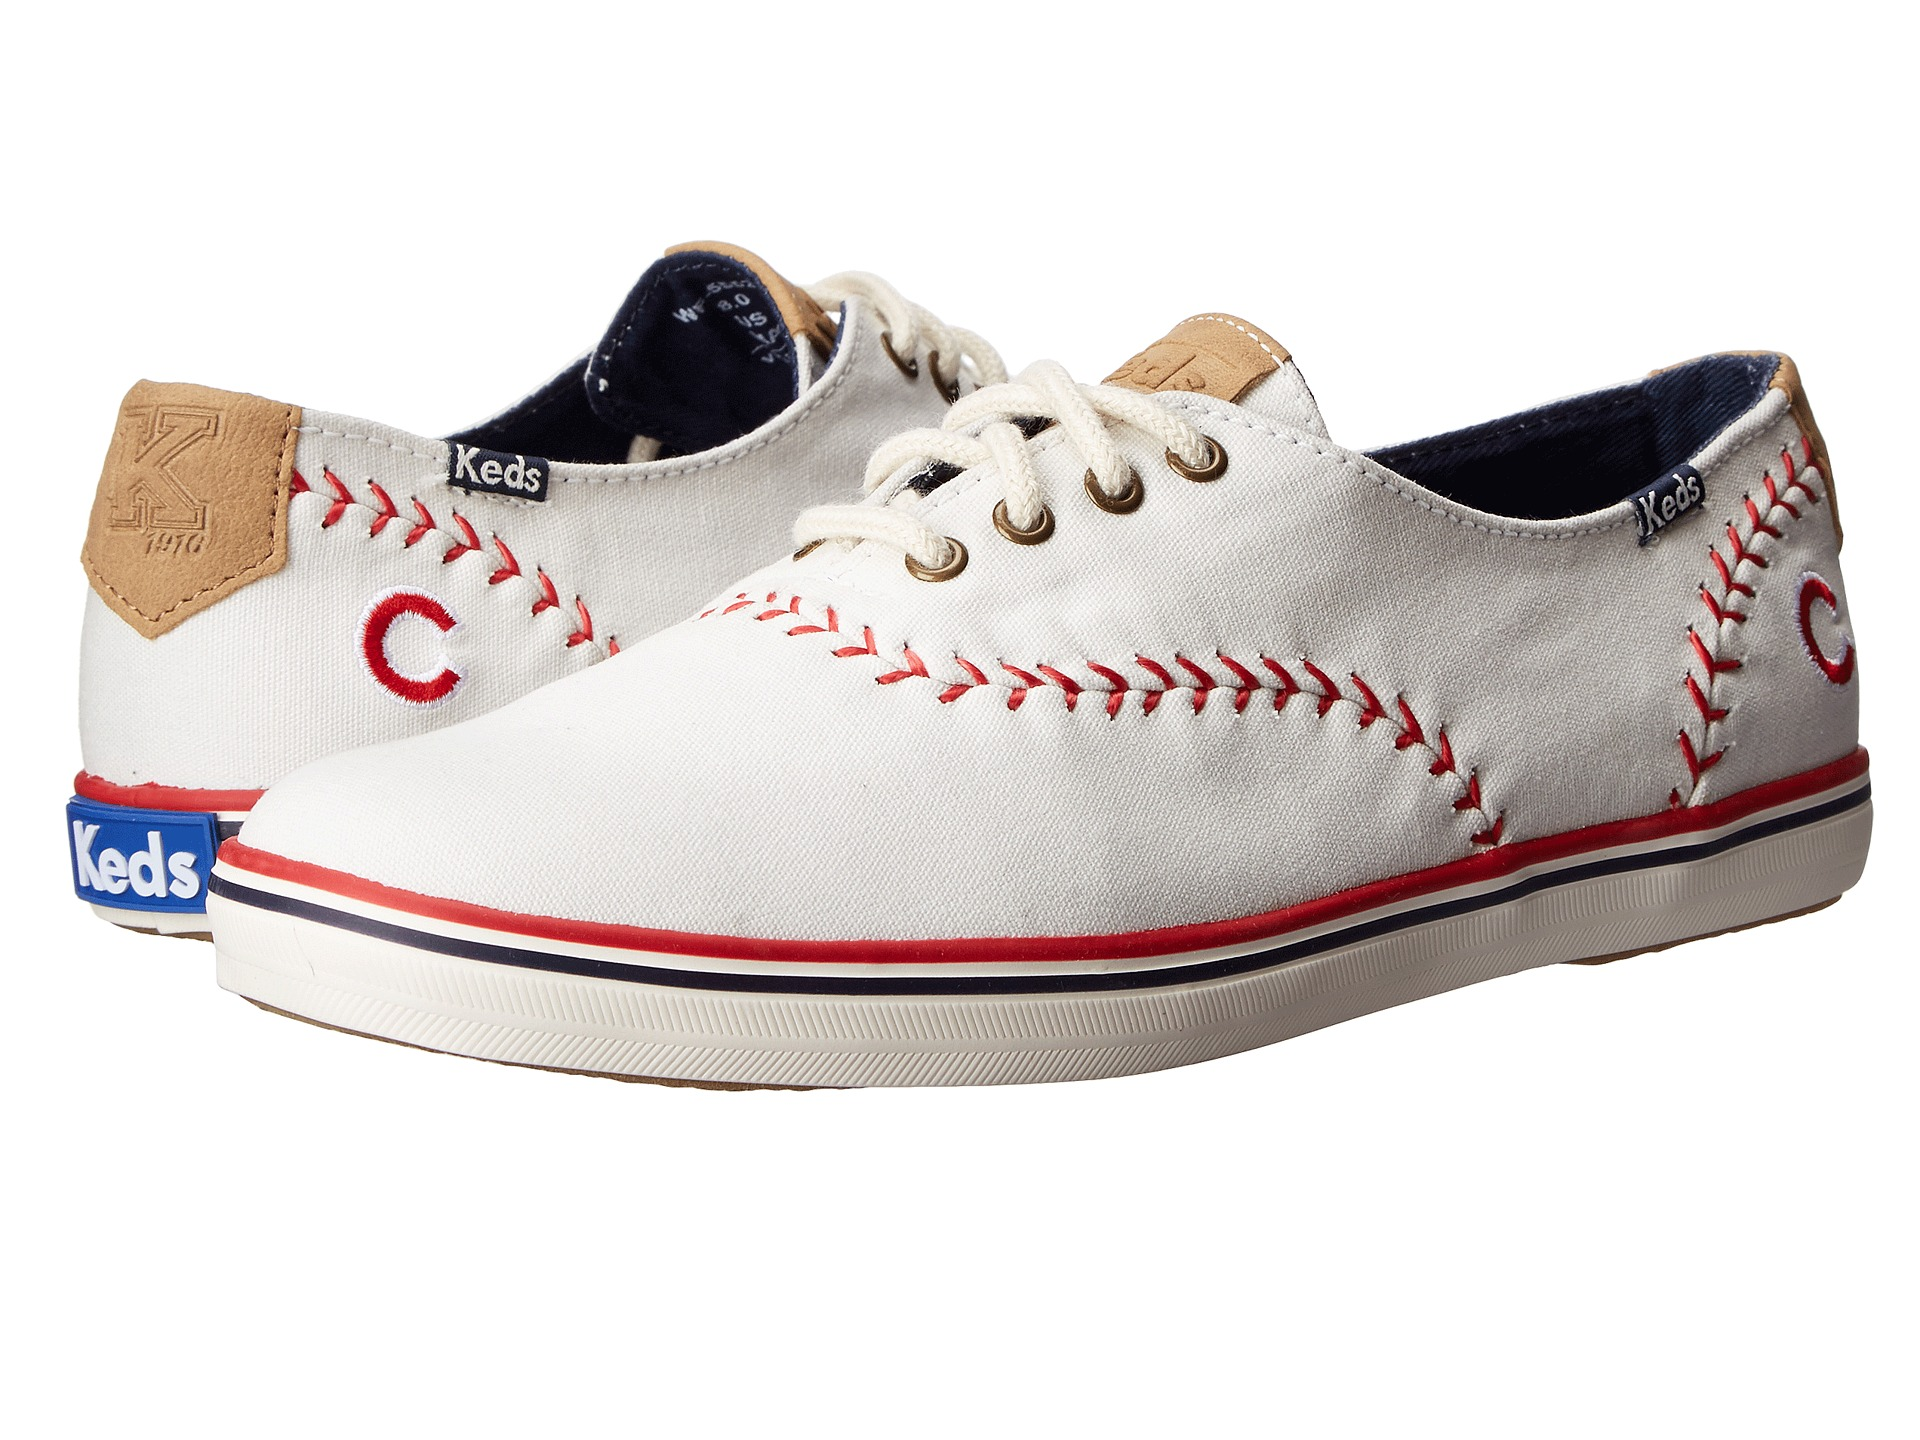 keds chion mlb pennant cubs white canvas zappos